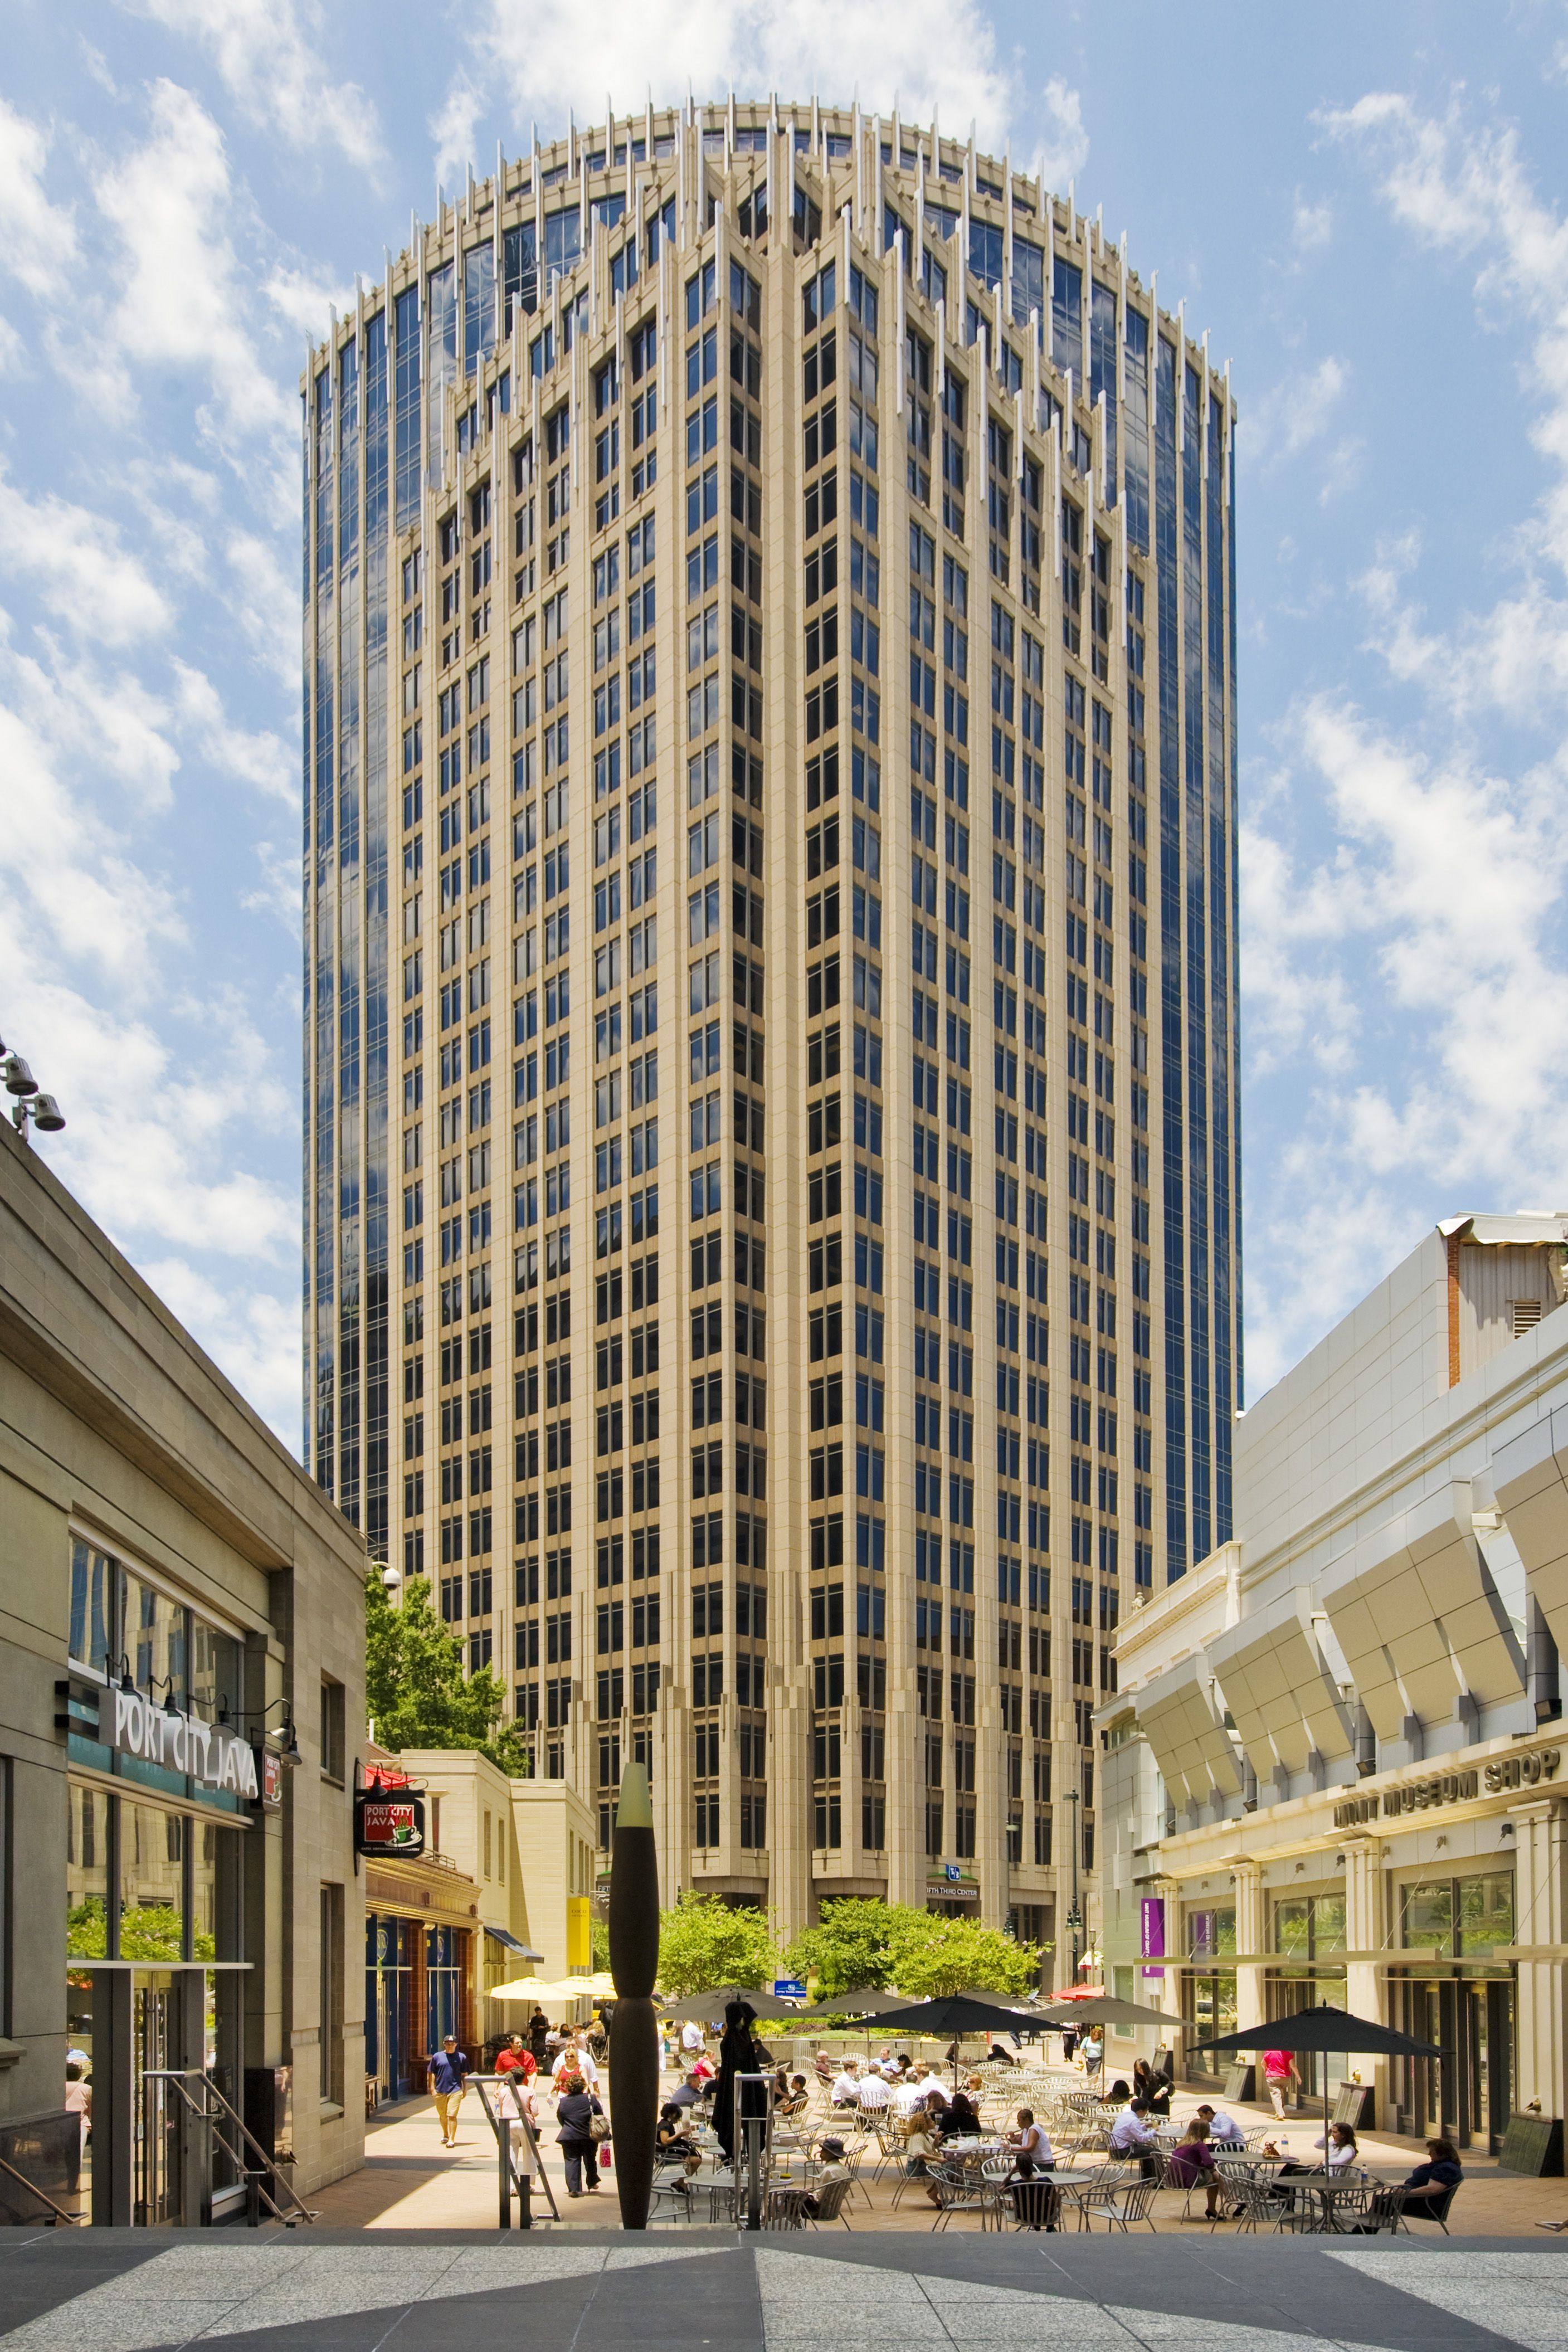 Fifth third center in downtown charlotte nc building